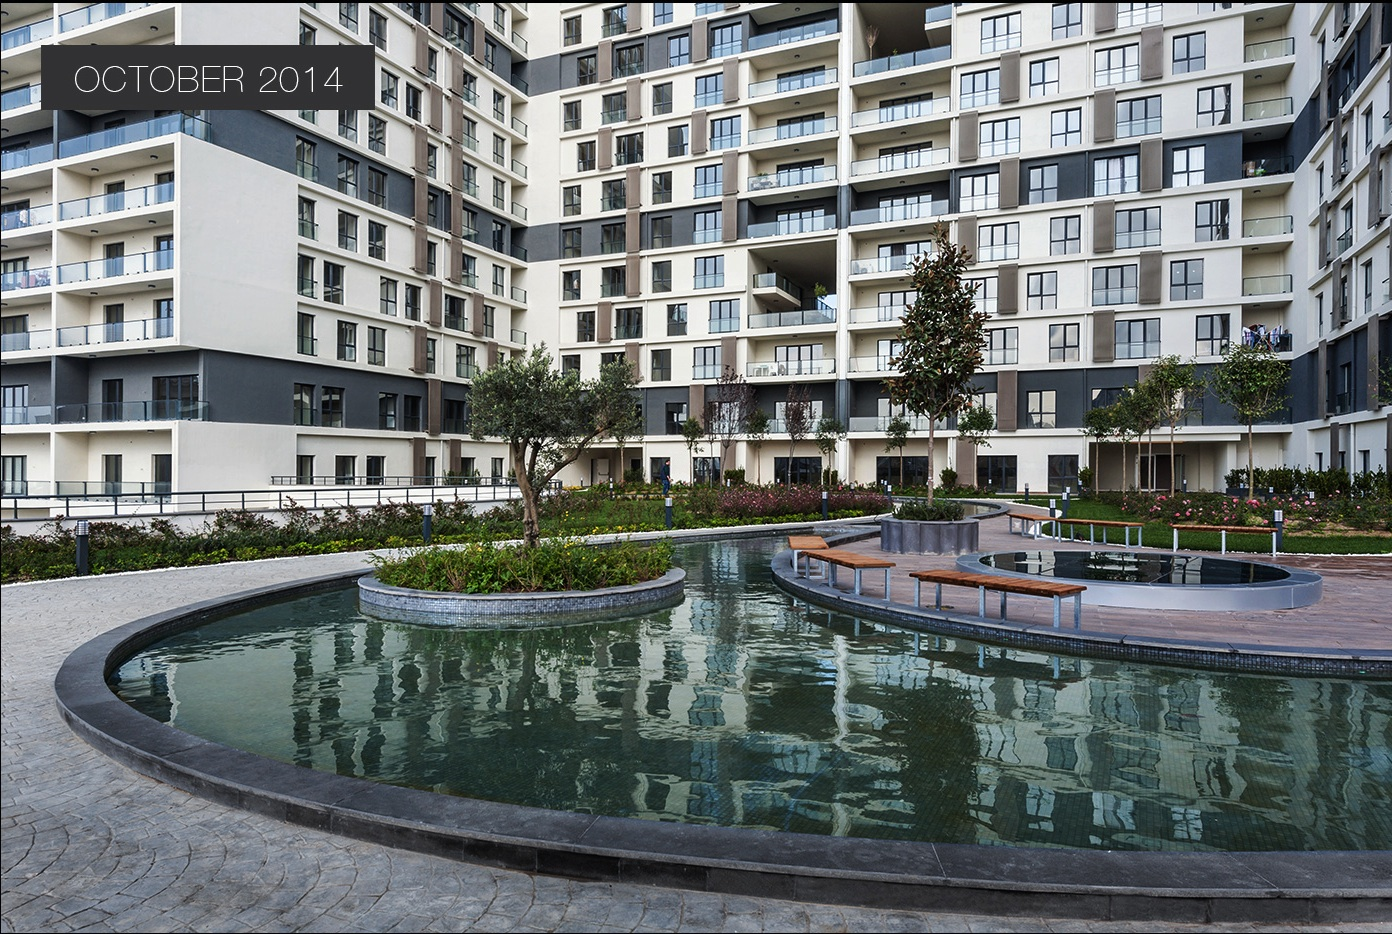 Commercial property for sale in Istanbul 2